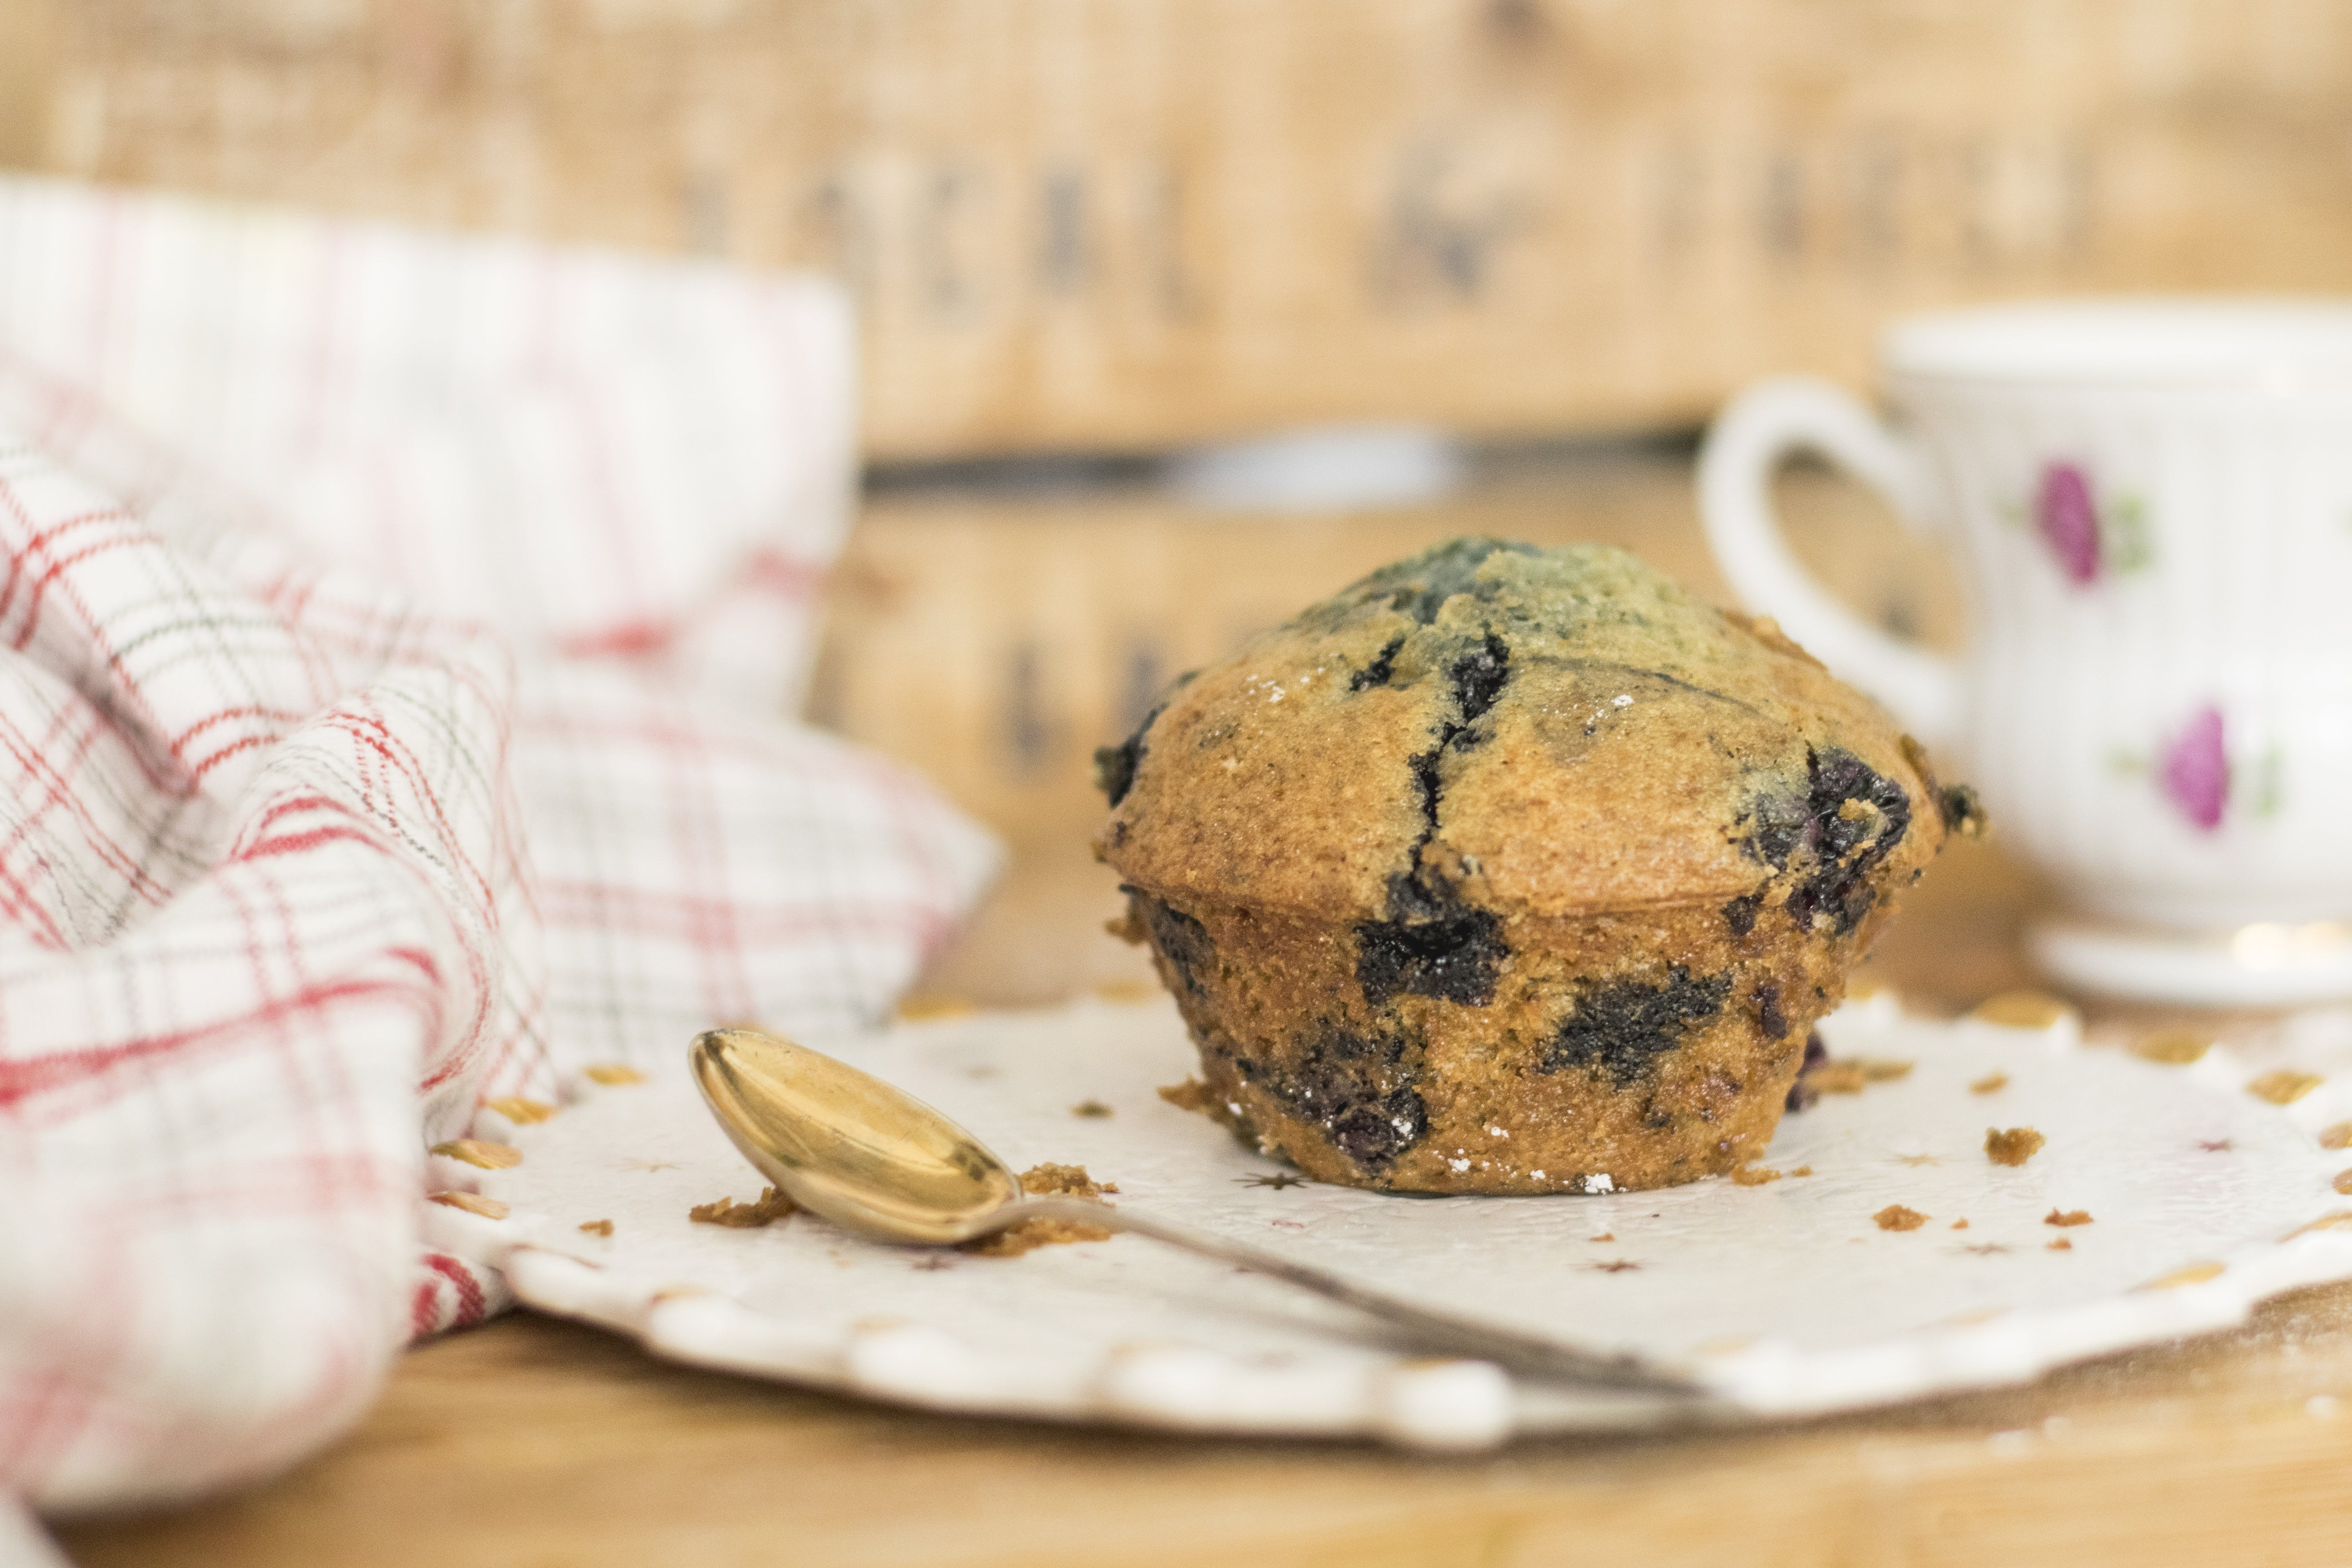 Muffin on Plate Beside Spoon